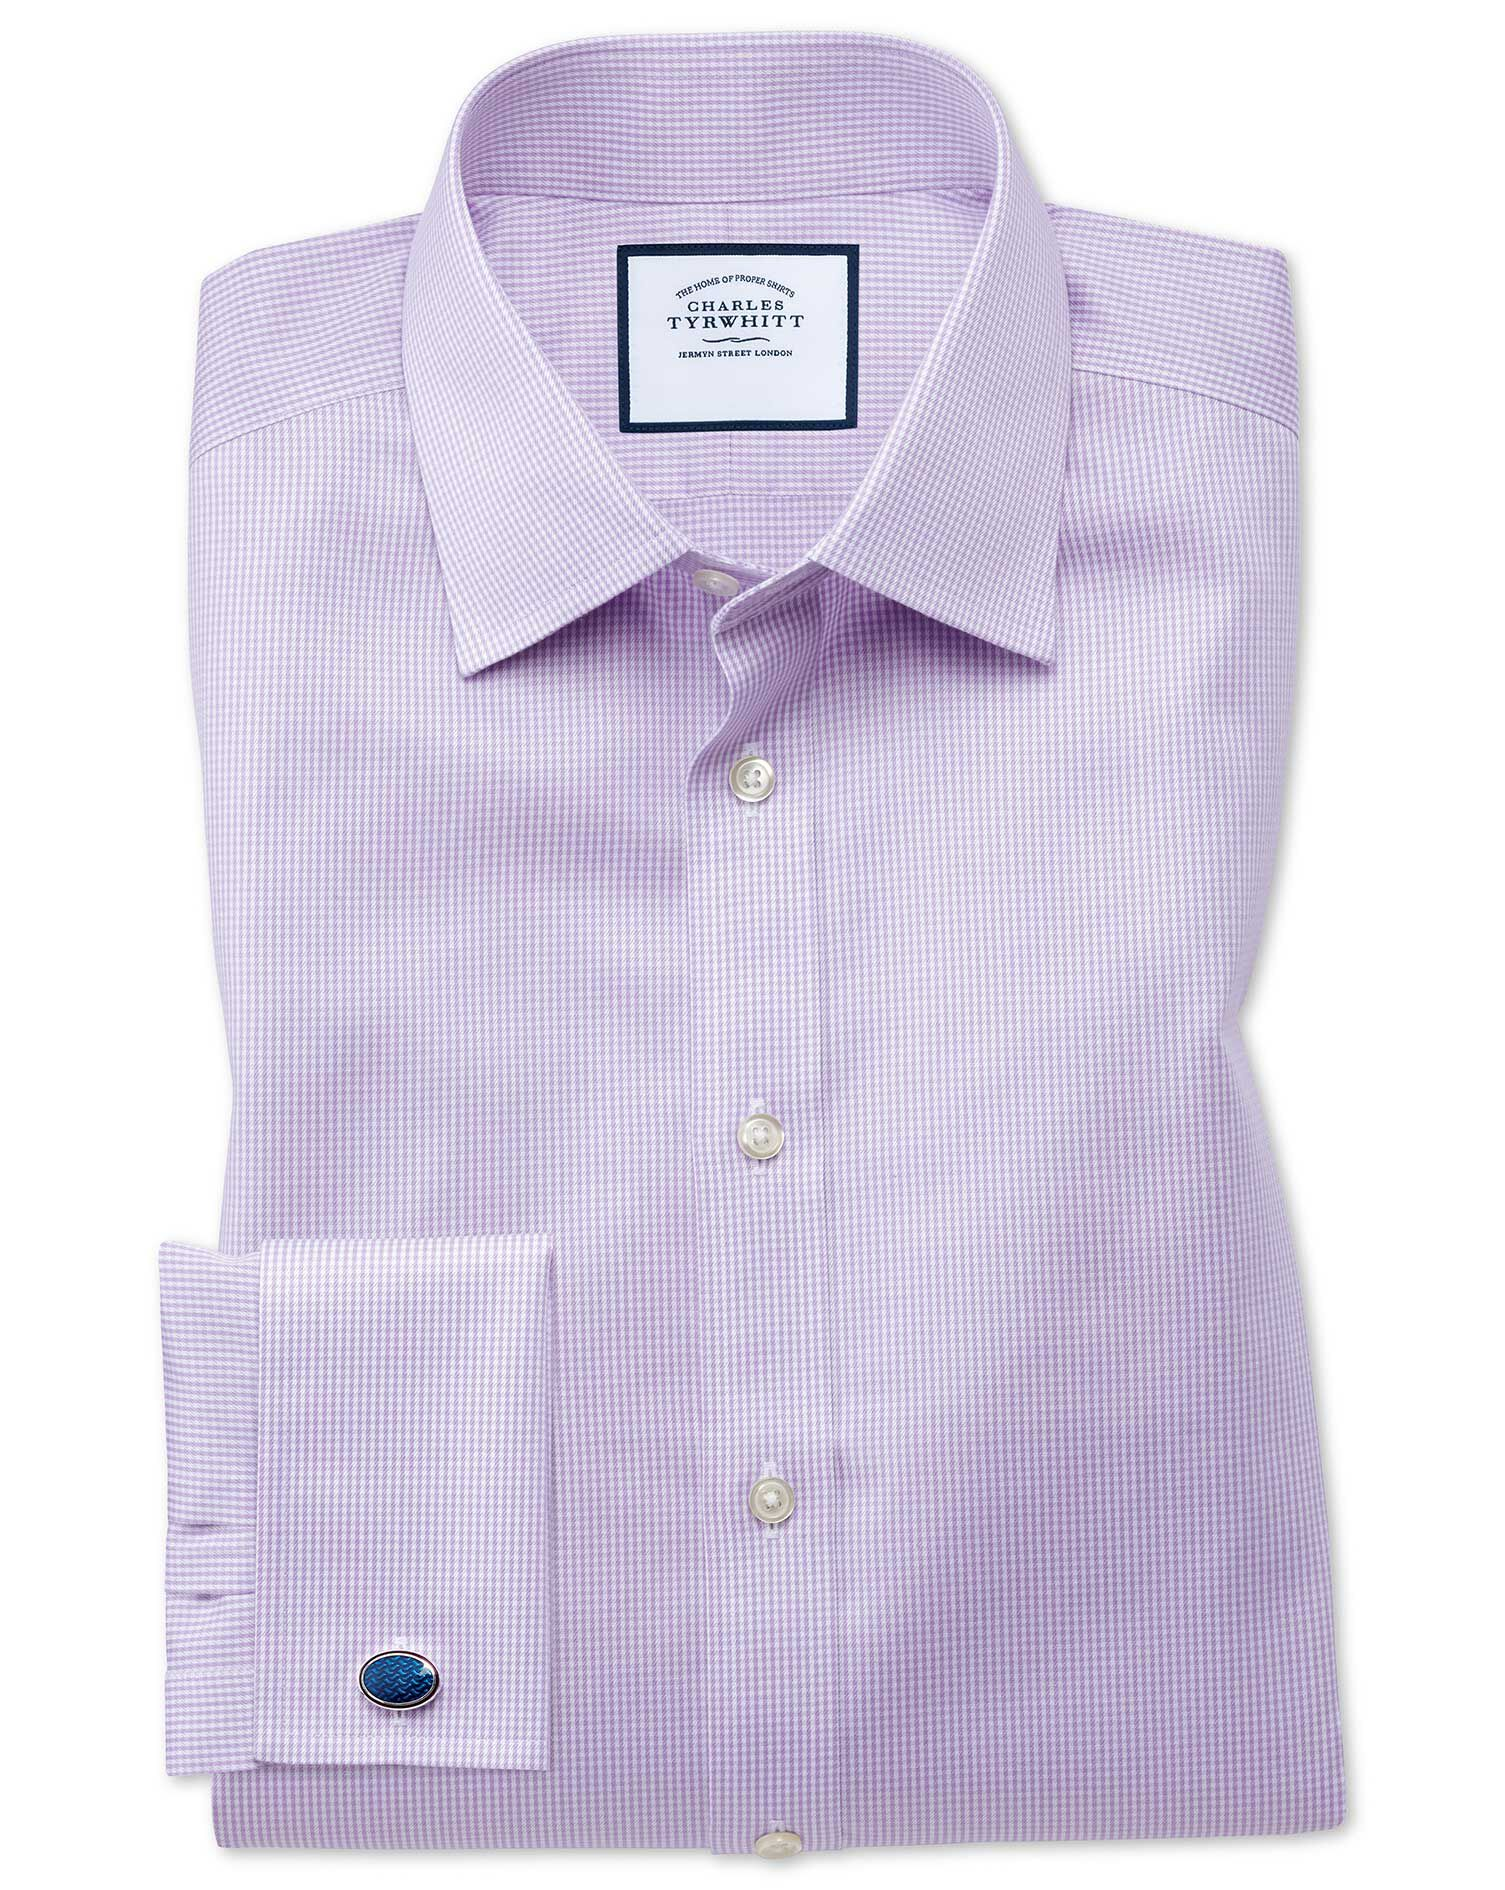 Slim Fit Non-Iron Puppytooth Lilac Cotton Formal Shirt Double Cuff Size 15.5/35 by Charles Tyrwhitt